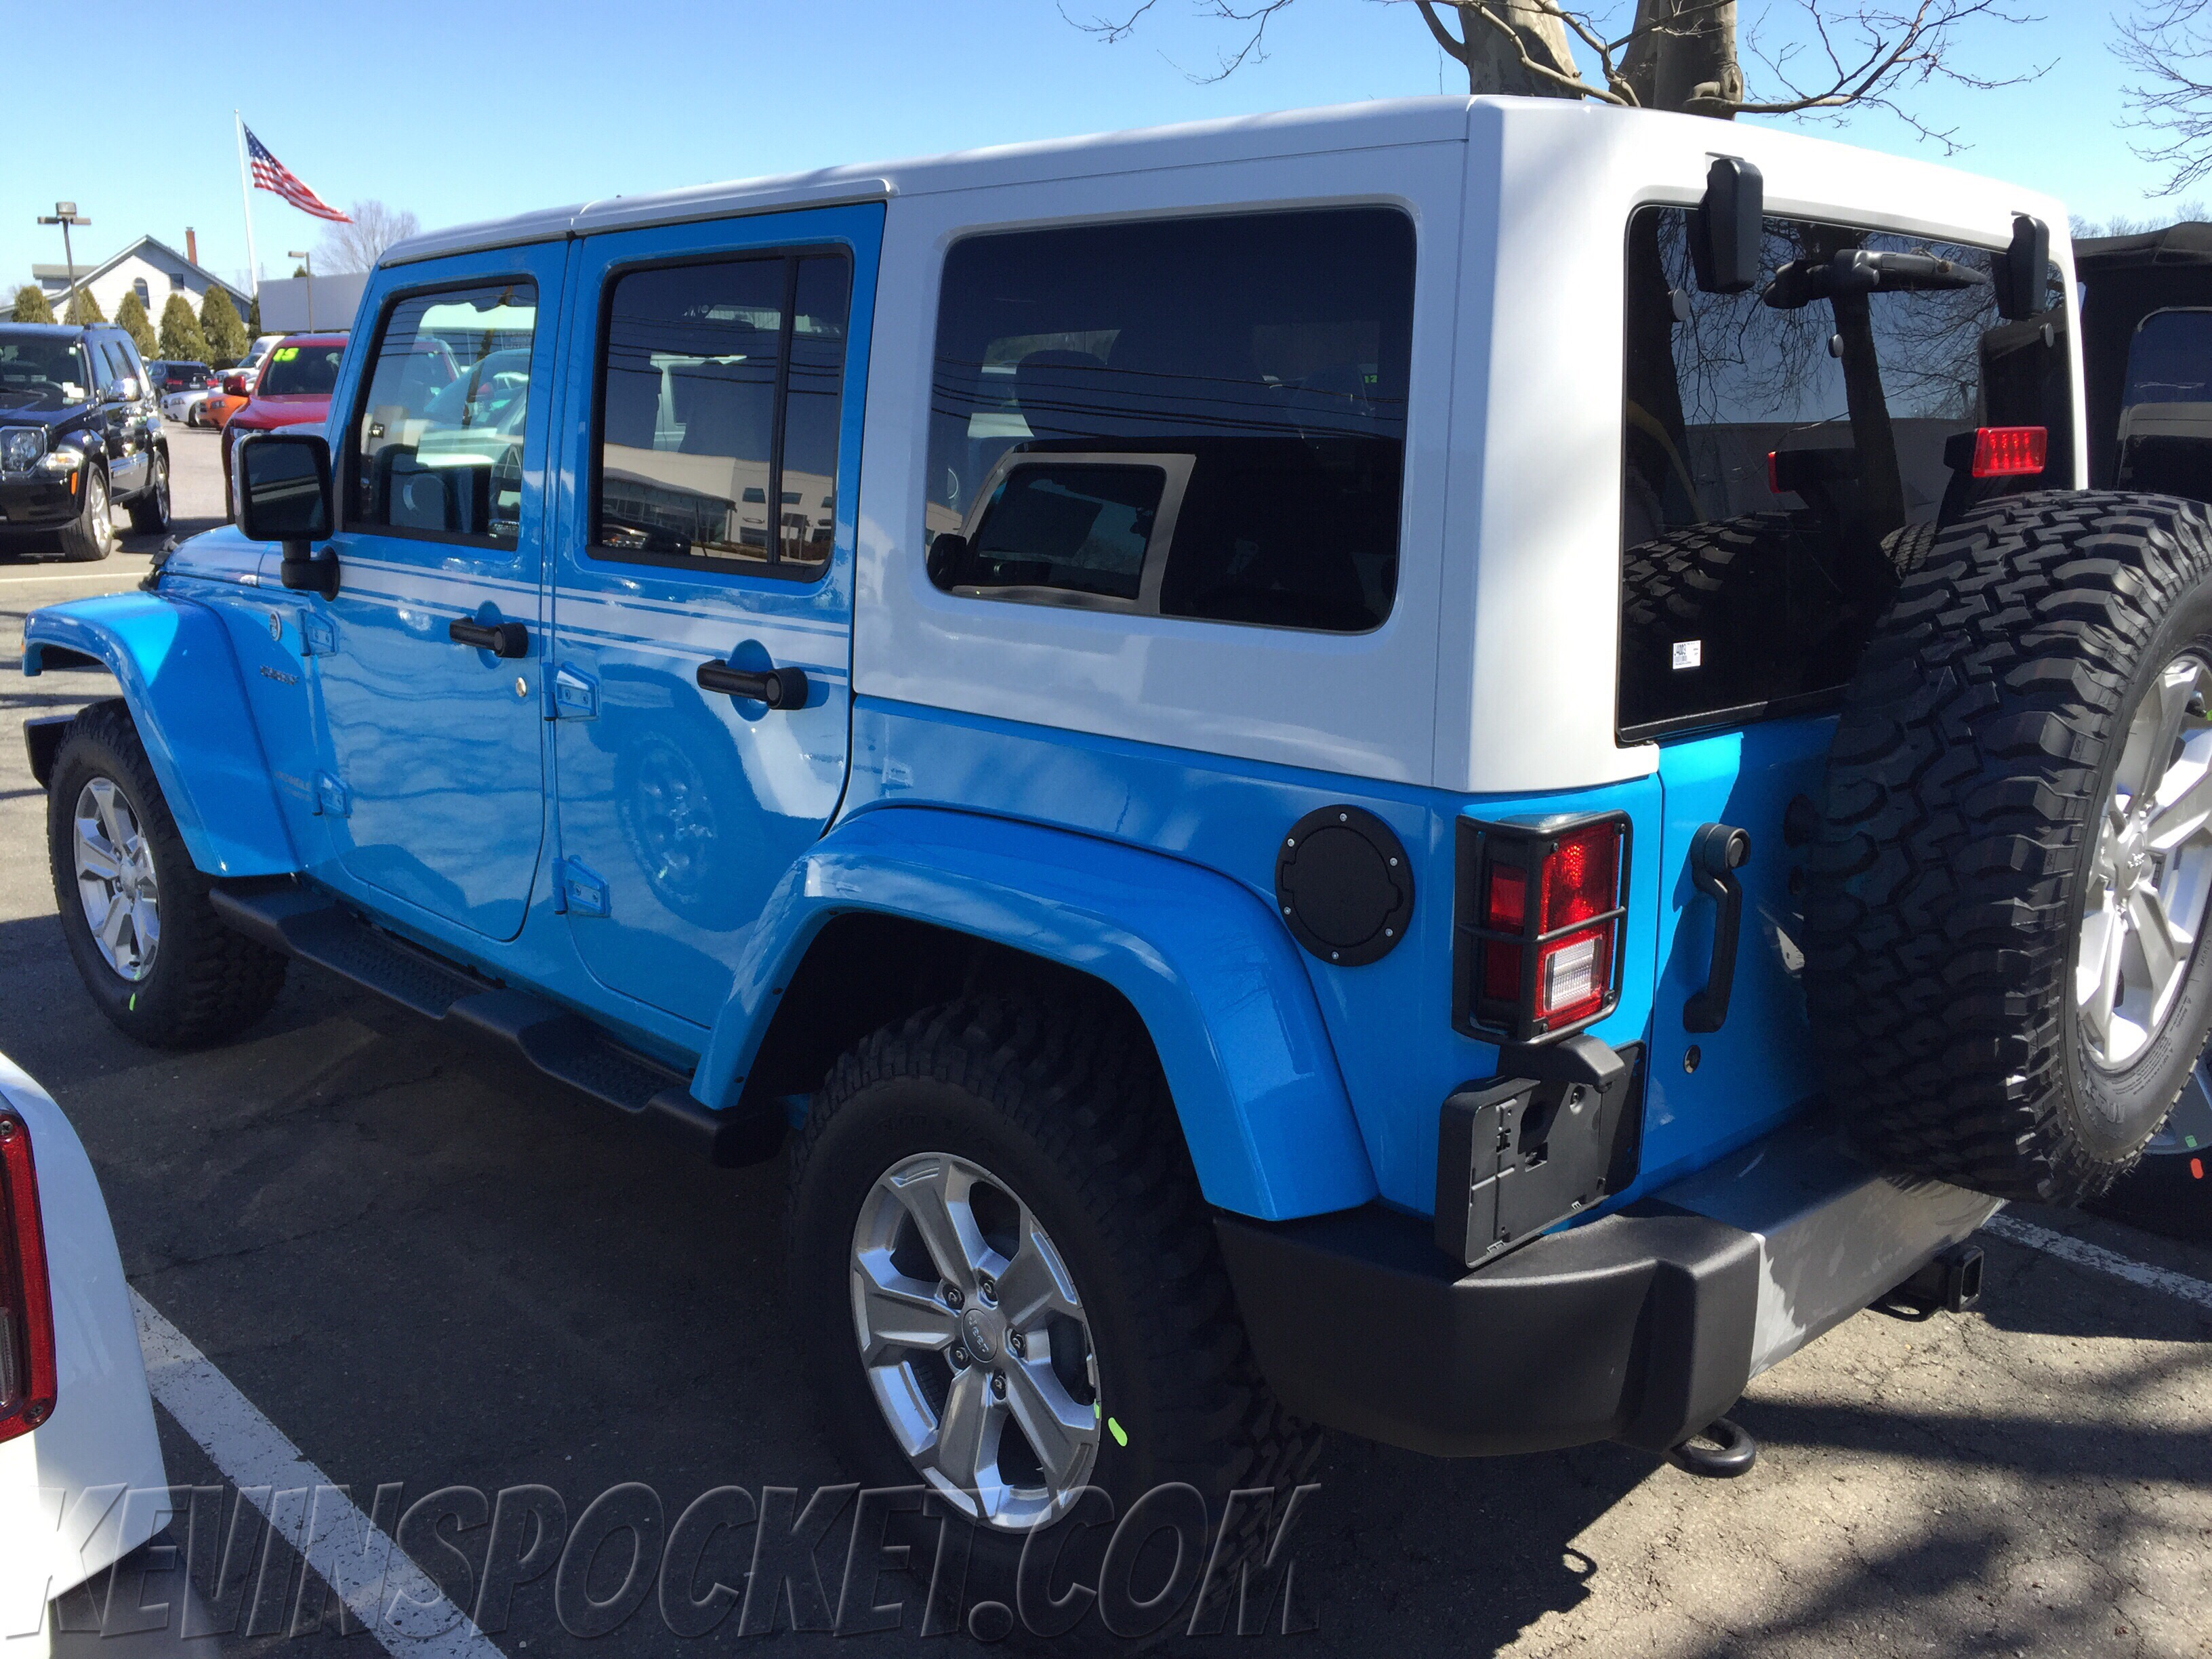 chief blue chief edition wrangler spotted – kevinspocket